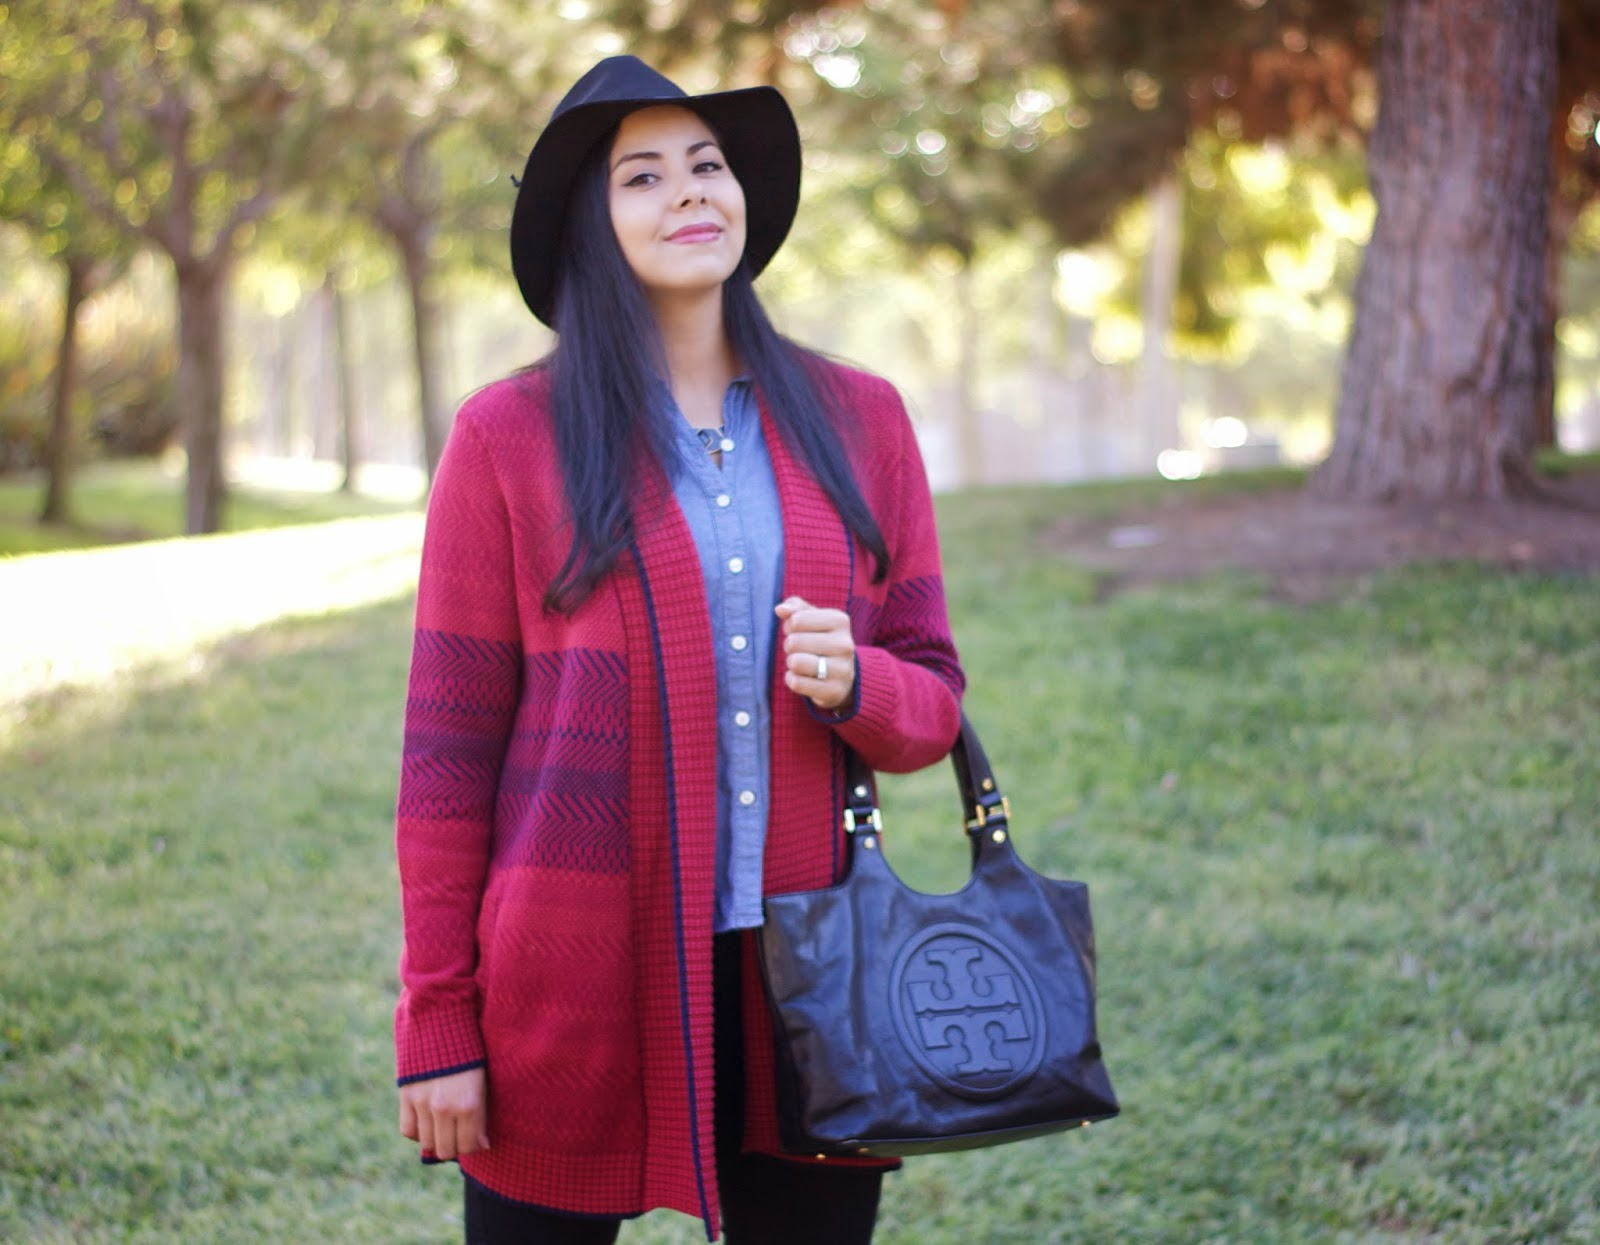 how to wear a fedora in Fall, cozy knit for Fall 2014, oxblood for Fall 2014, wine colored sweater, san diego fashion blogger, how to wear a knit for Fall, how to wear burgundy in winter, cabi clothing knits, dark lipstick for Fall